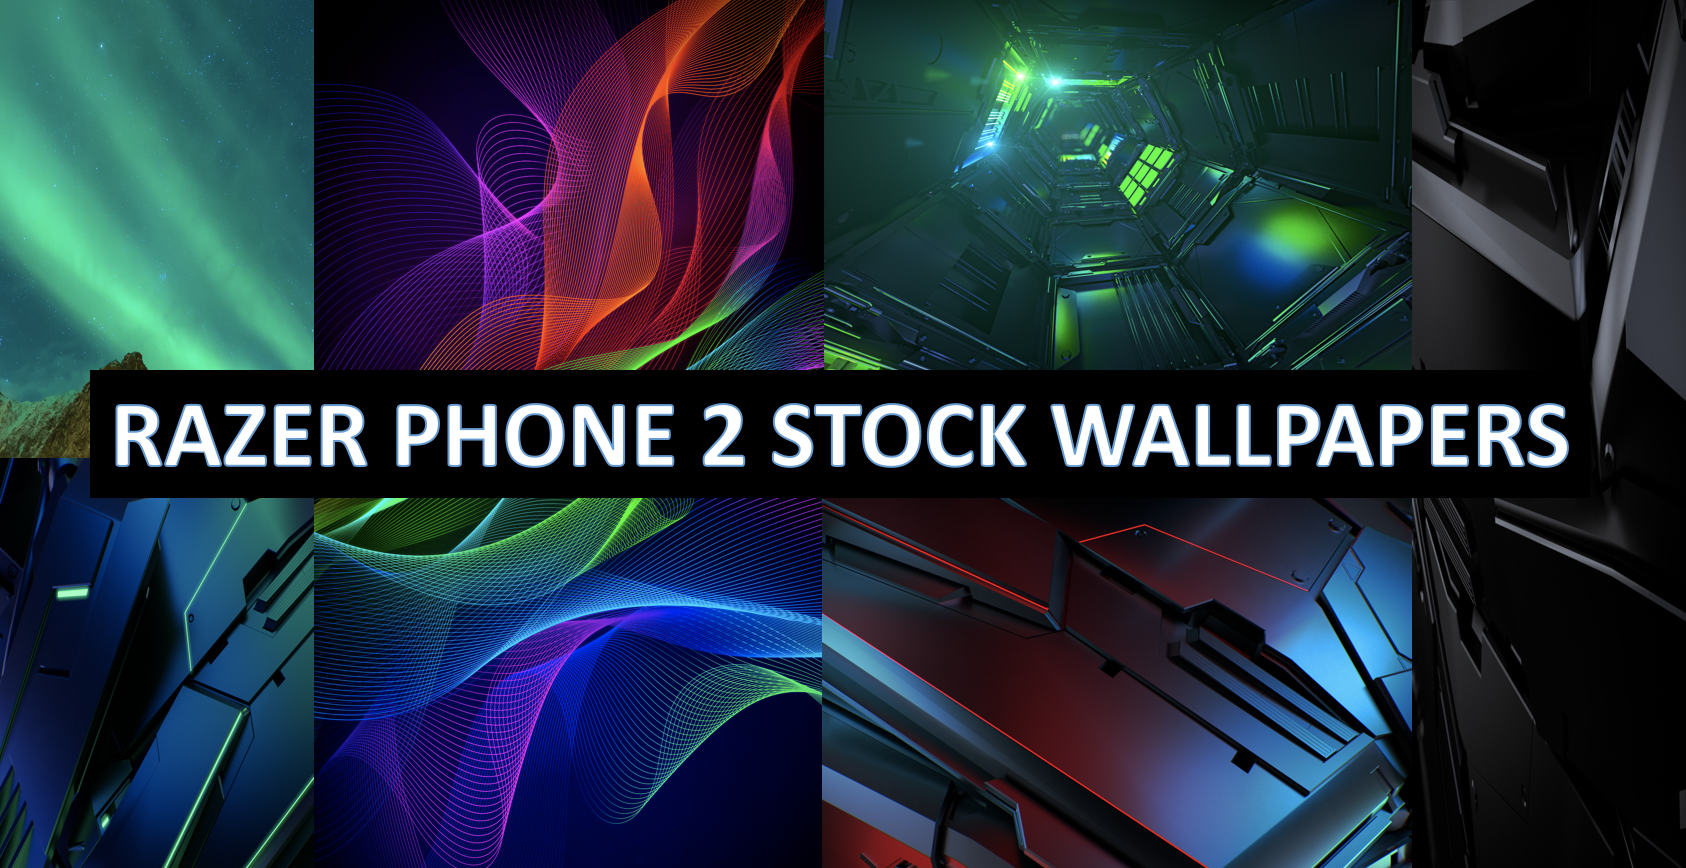 Download Razer Phone 2 Stock Wallpapers Quadhd Resolution , HD Wallpaper & Backgrounds